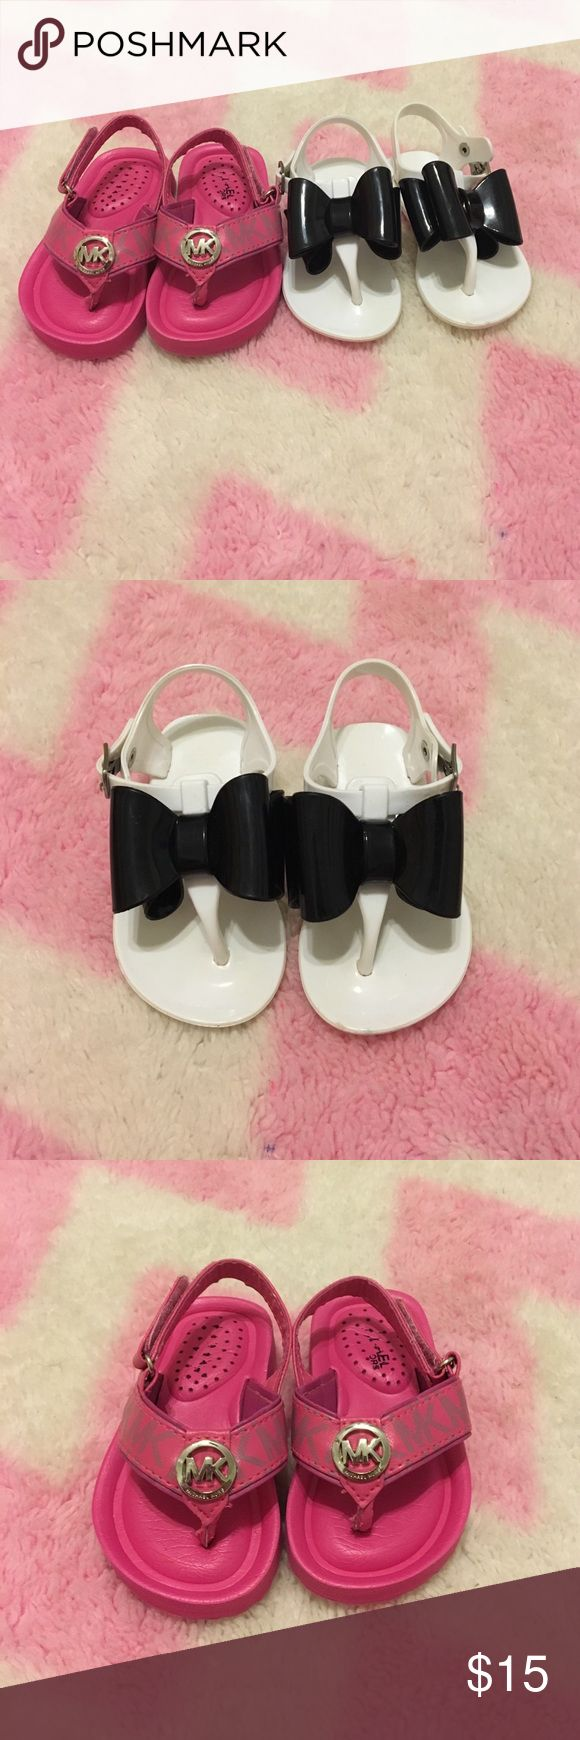 MiK Sandals and White with Black Bow Flip Flops Pink MK Flip Flop Sandals and White with Black Bow Flip Flip Sandals.  White Sandals are NOT Michael Kors MICHAEL Michael Kors Shoes Sandals & Flip Flops